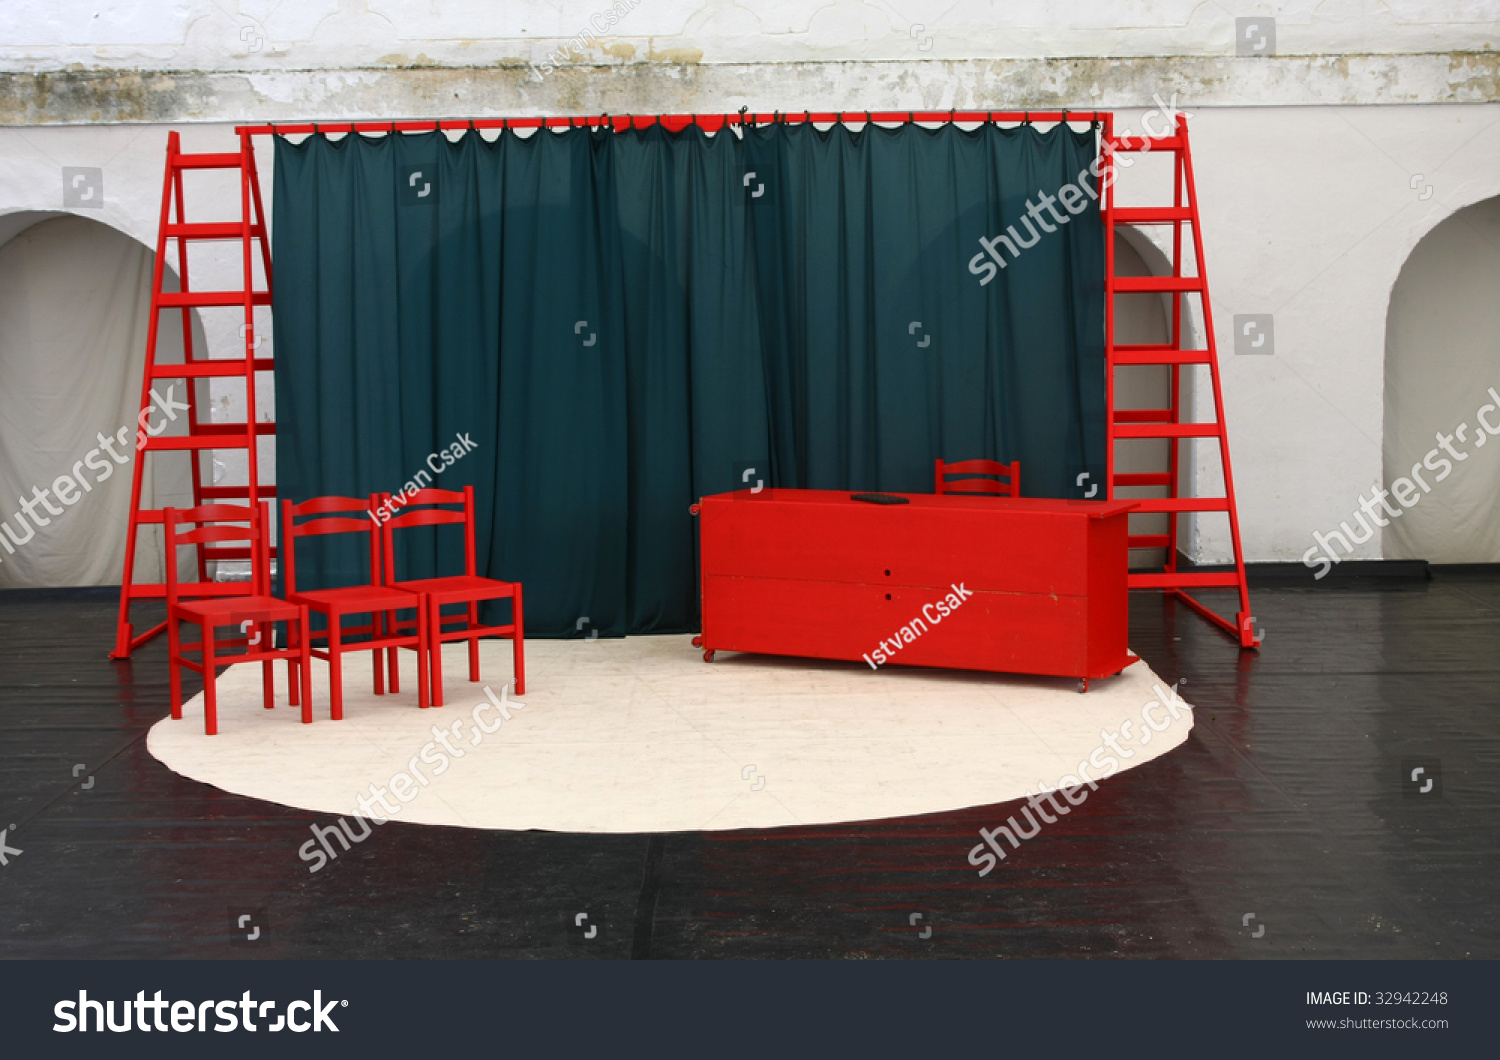 Interstage Staging Hire - Stage Hire Company in Camden, London (UK)